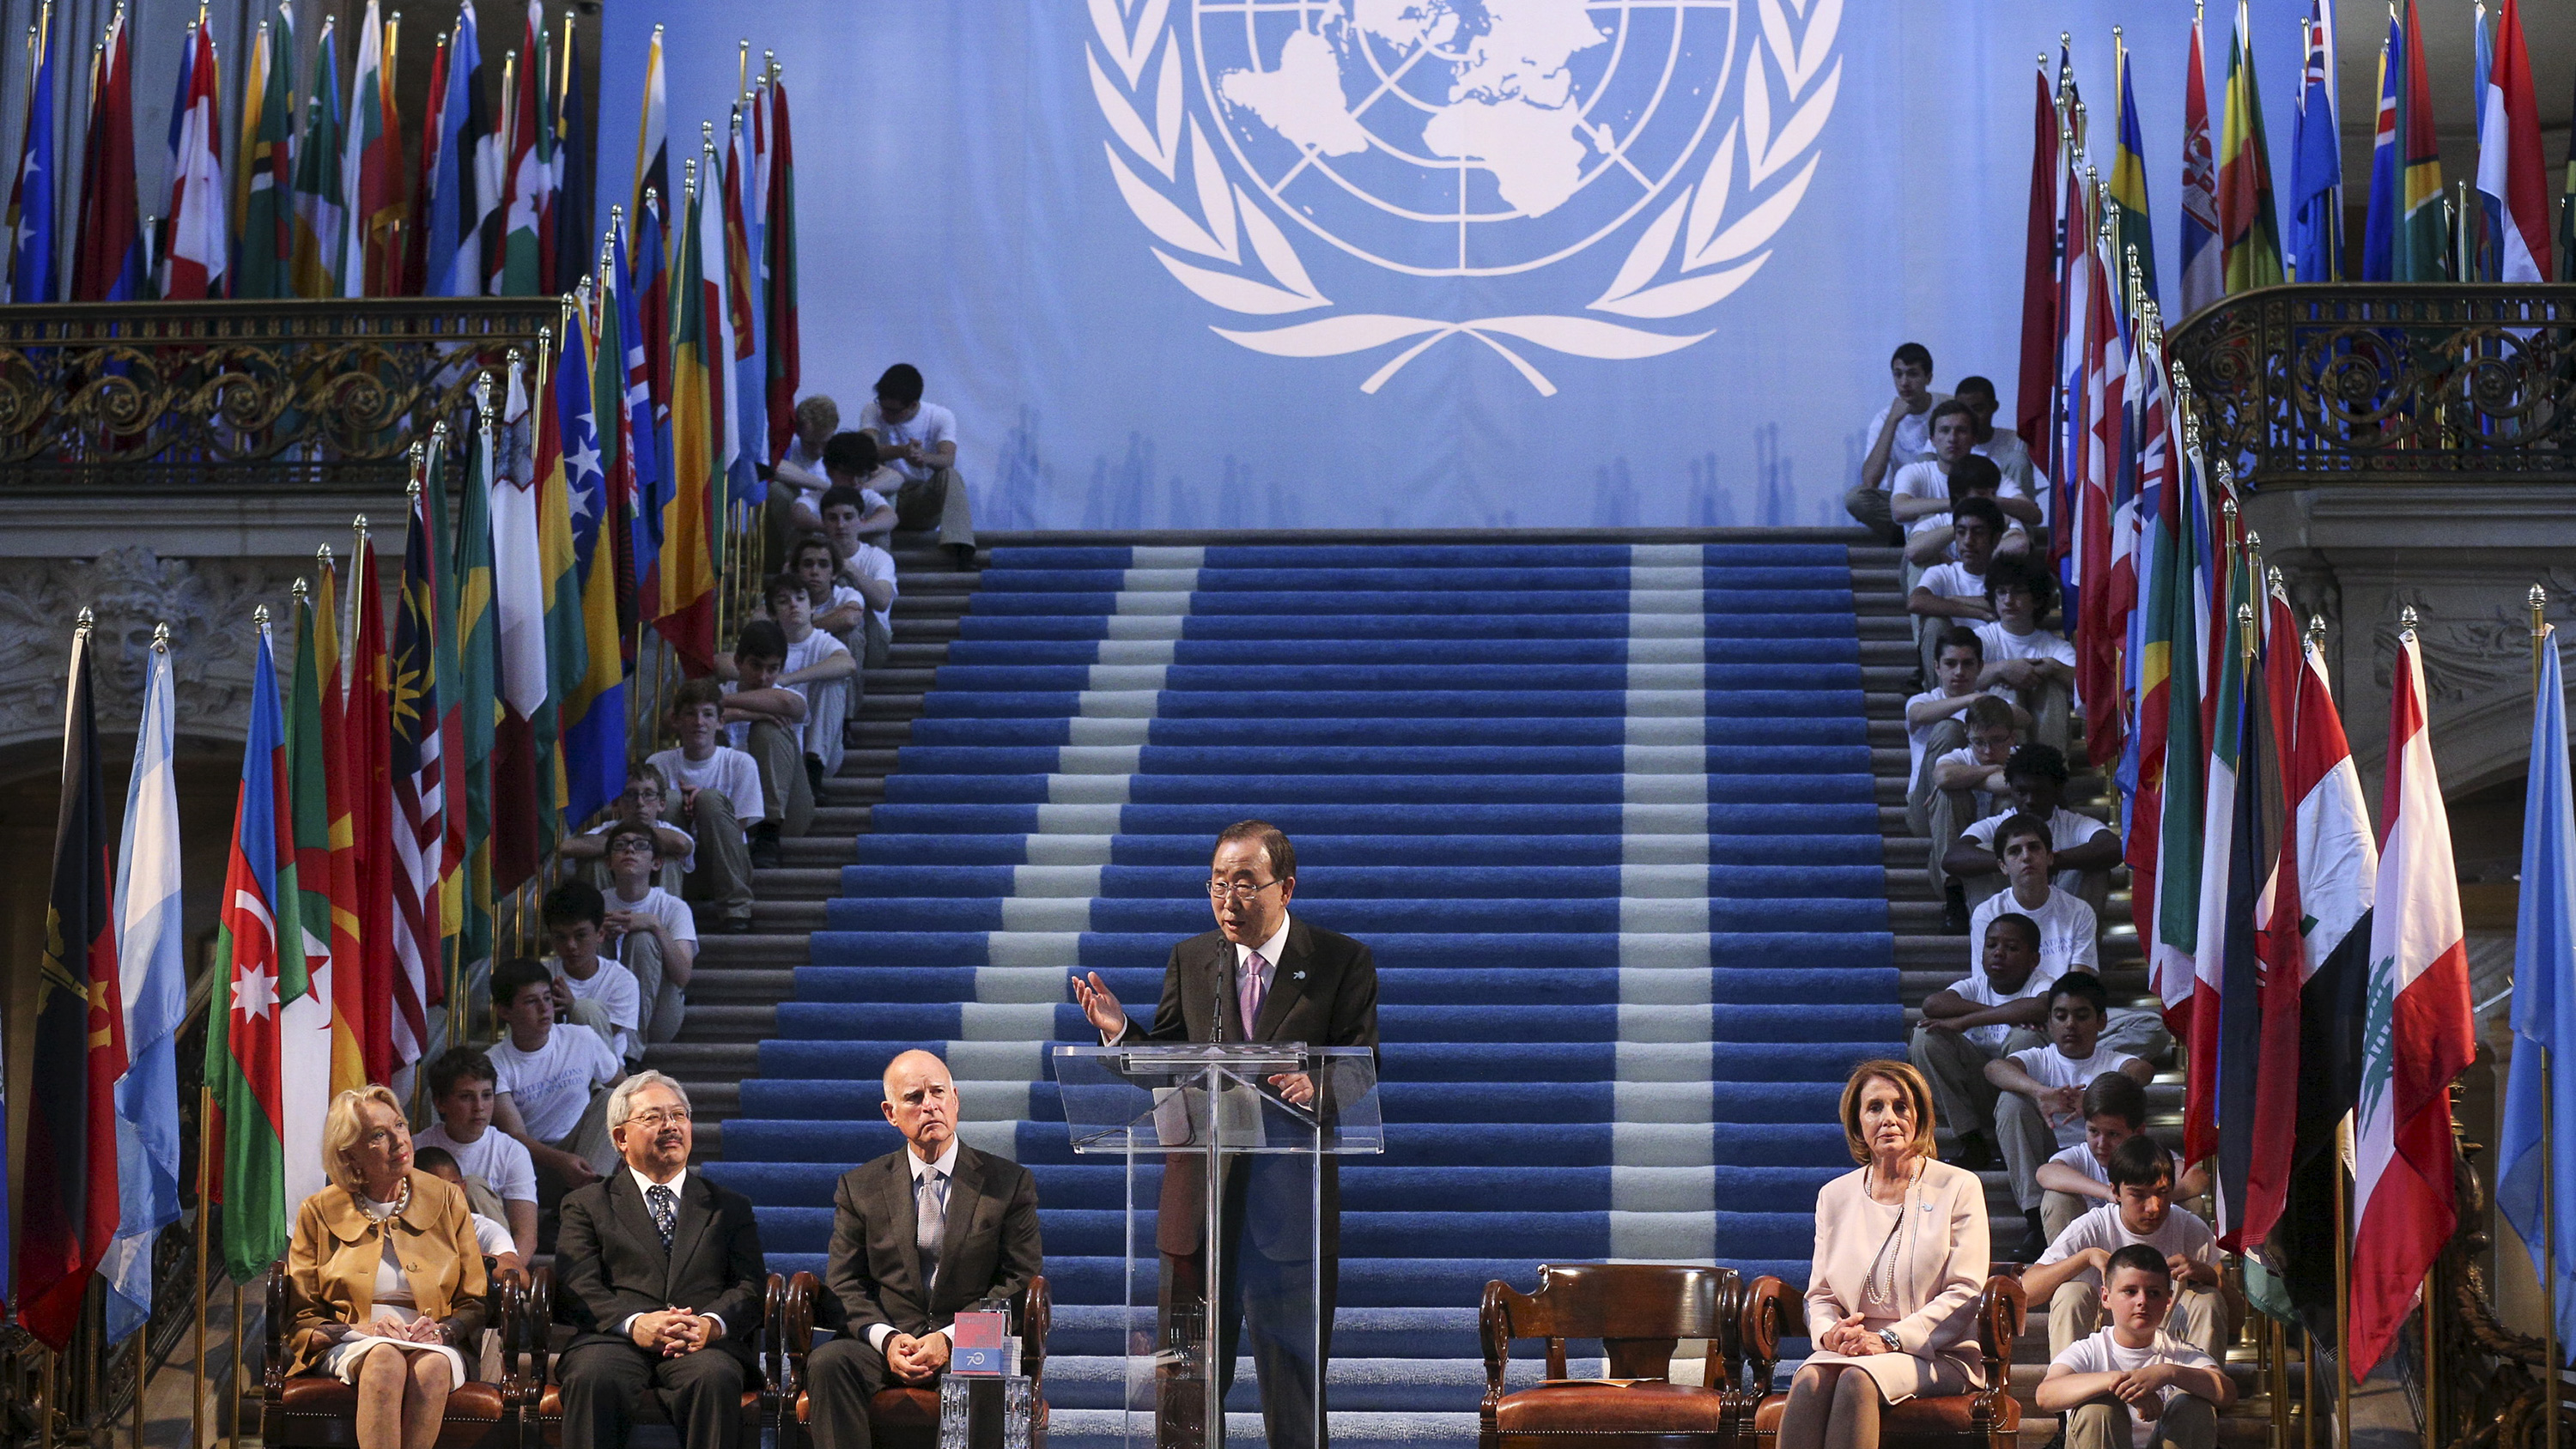 The photo shows the former UN Secretary-General at a podium on an elaborately designed stage with steps leading up and children dressed in white shirts and tan slacks on either sides of the stairs.